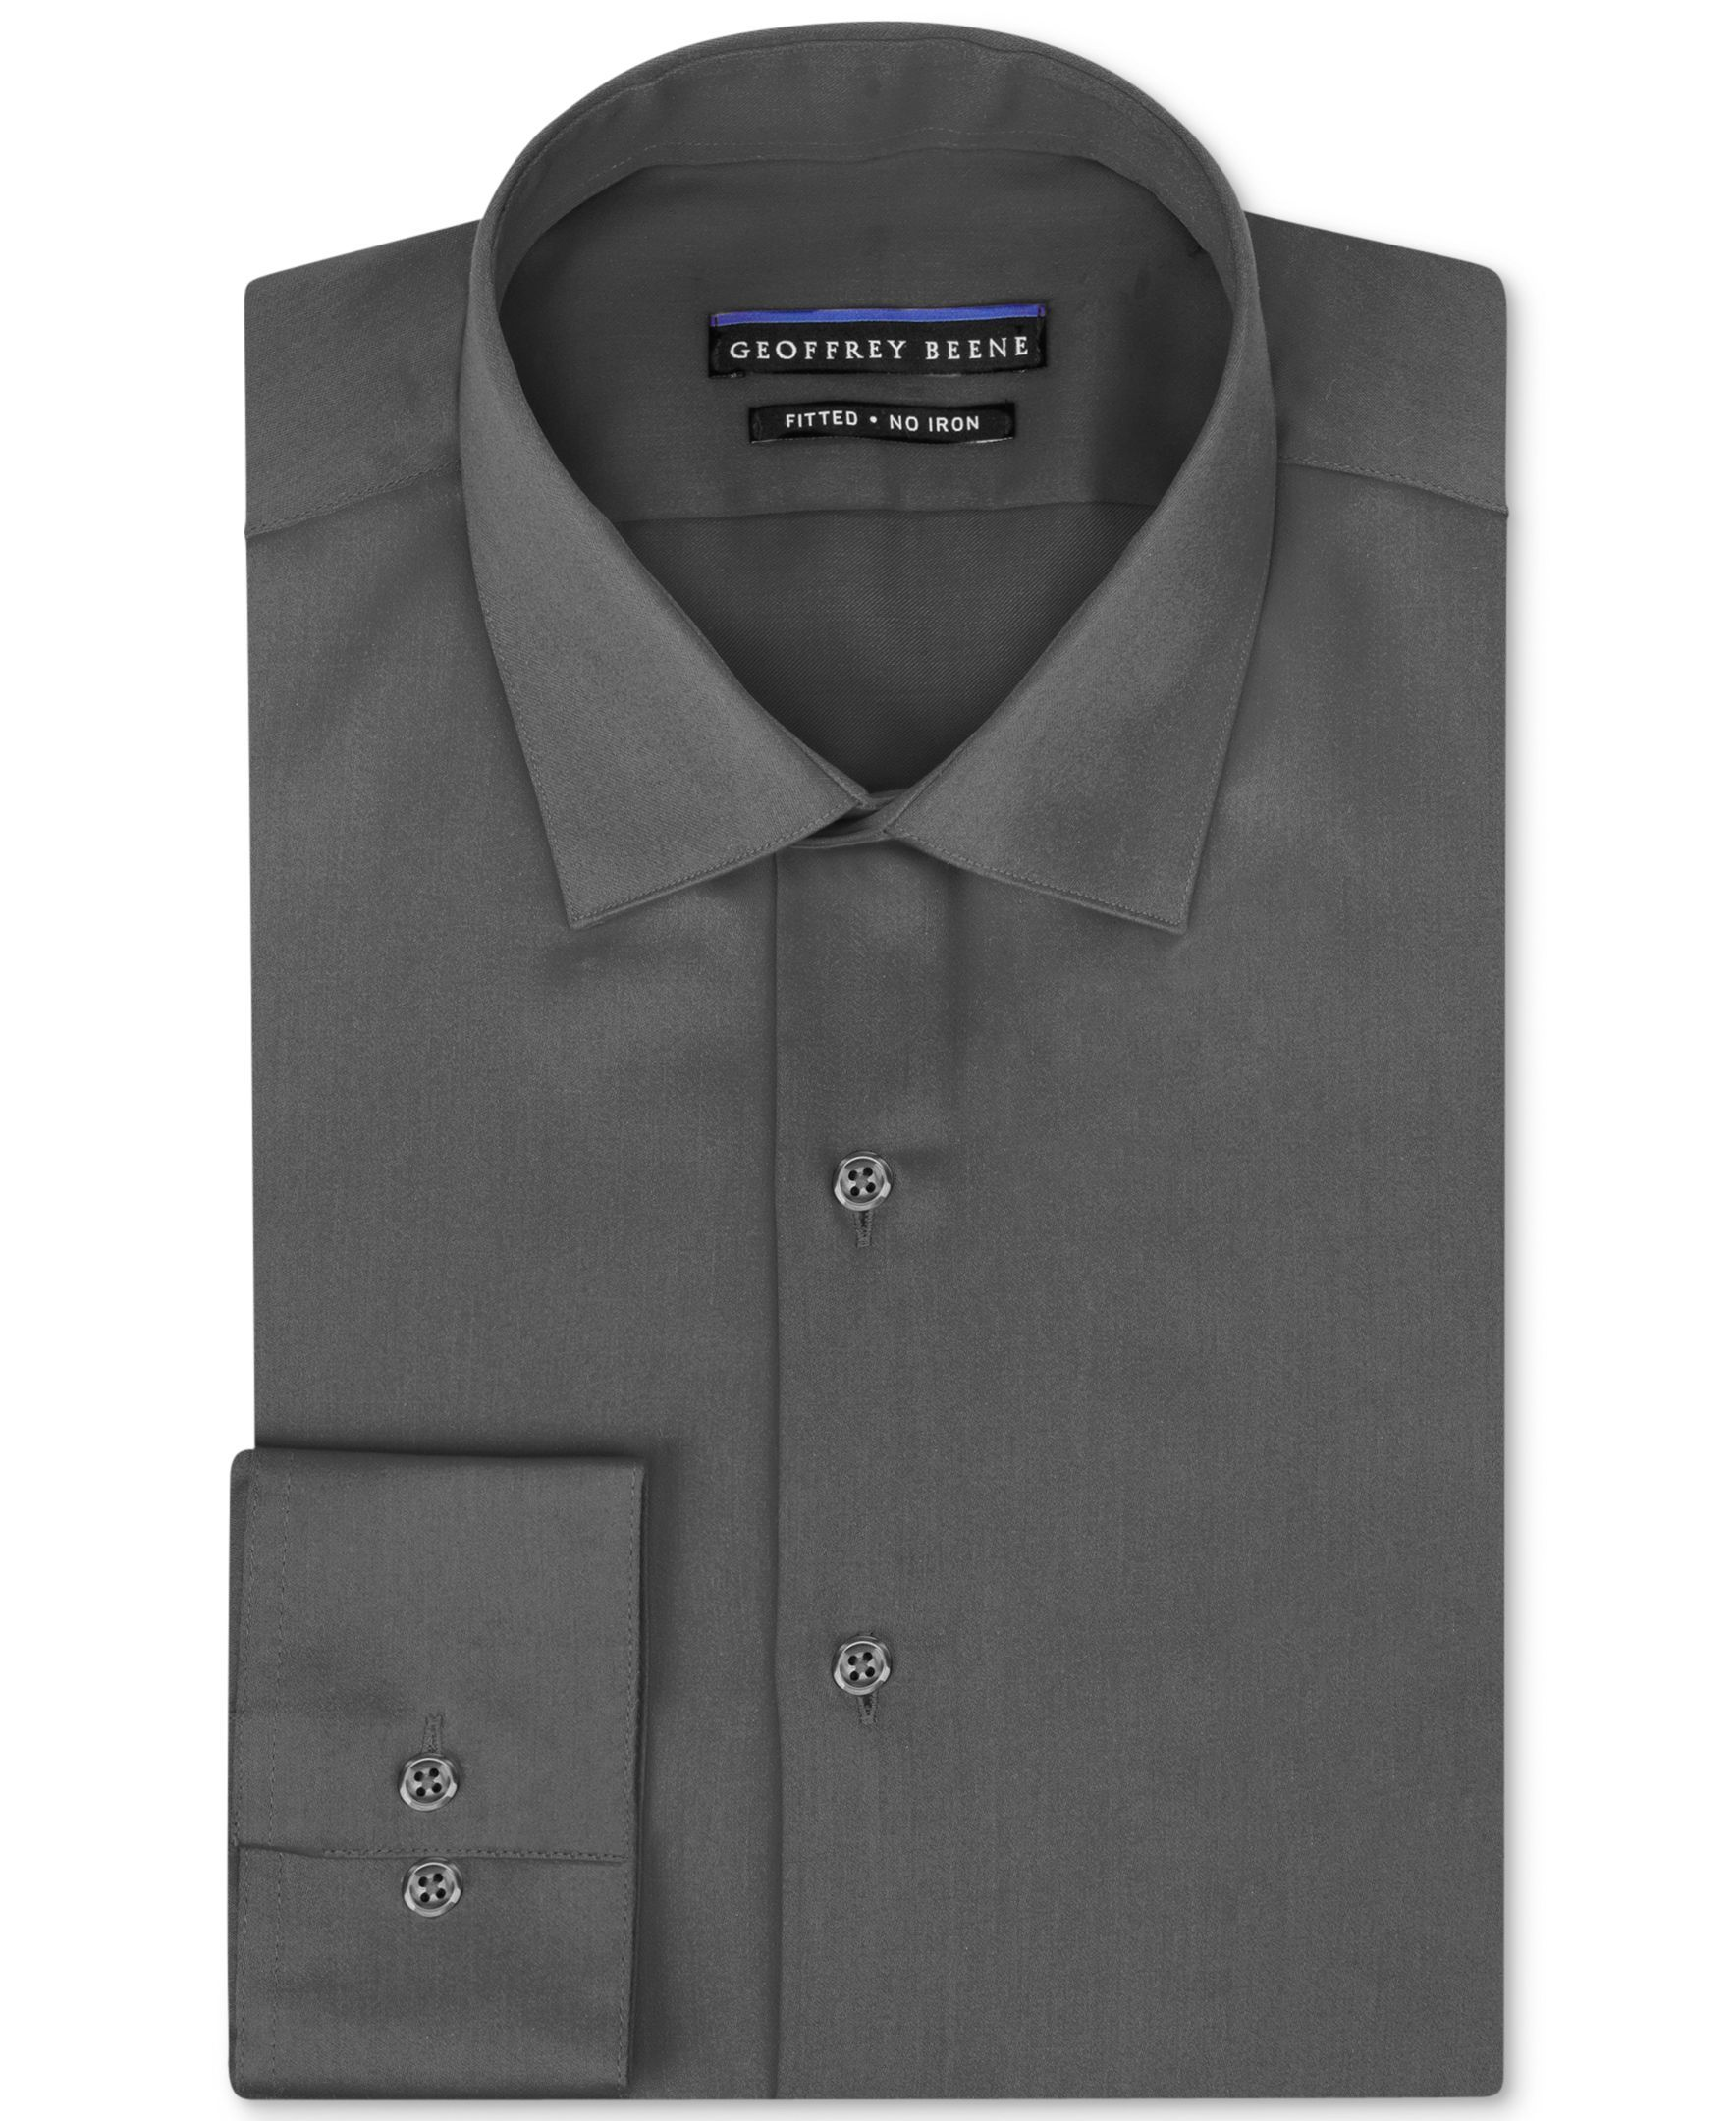 a981062924 Geoffrey Beene Non-Iron Fitted Stretch Sateen Solid Dress Shirt ...